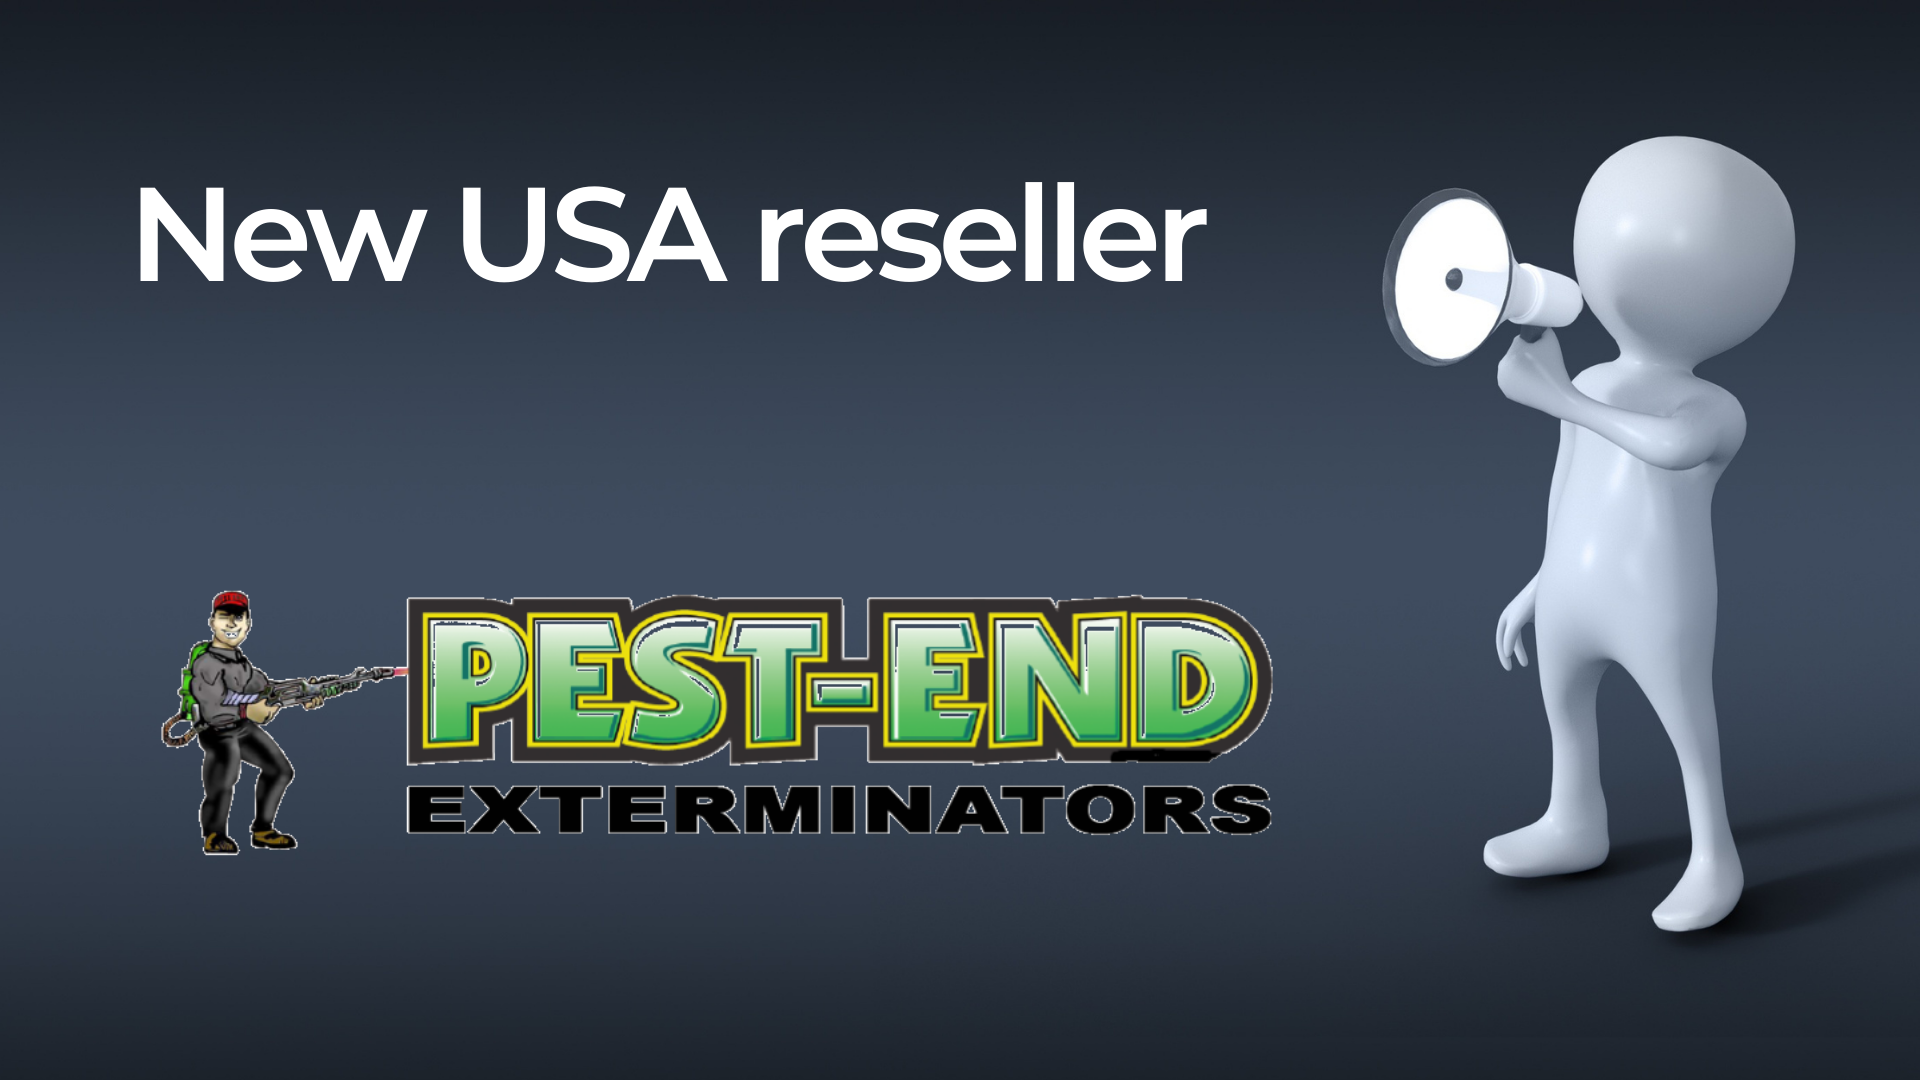 Pest-End are the new USA reseller for Spotta Smart Pest Systems